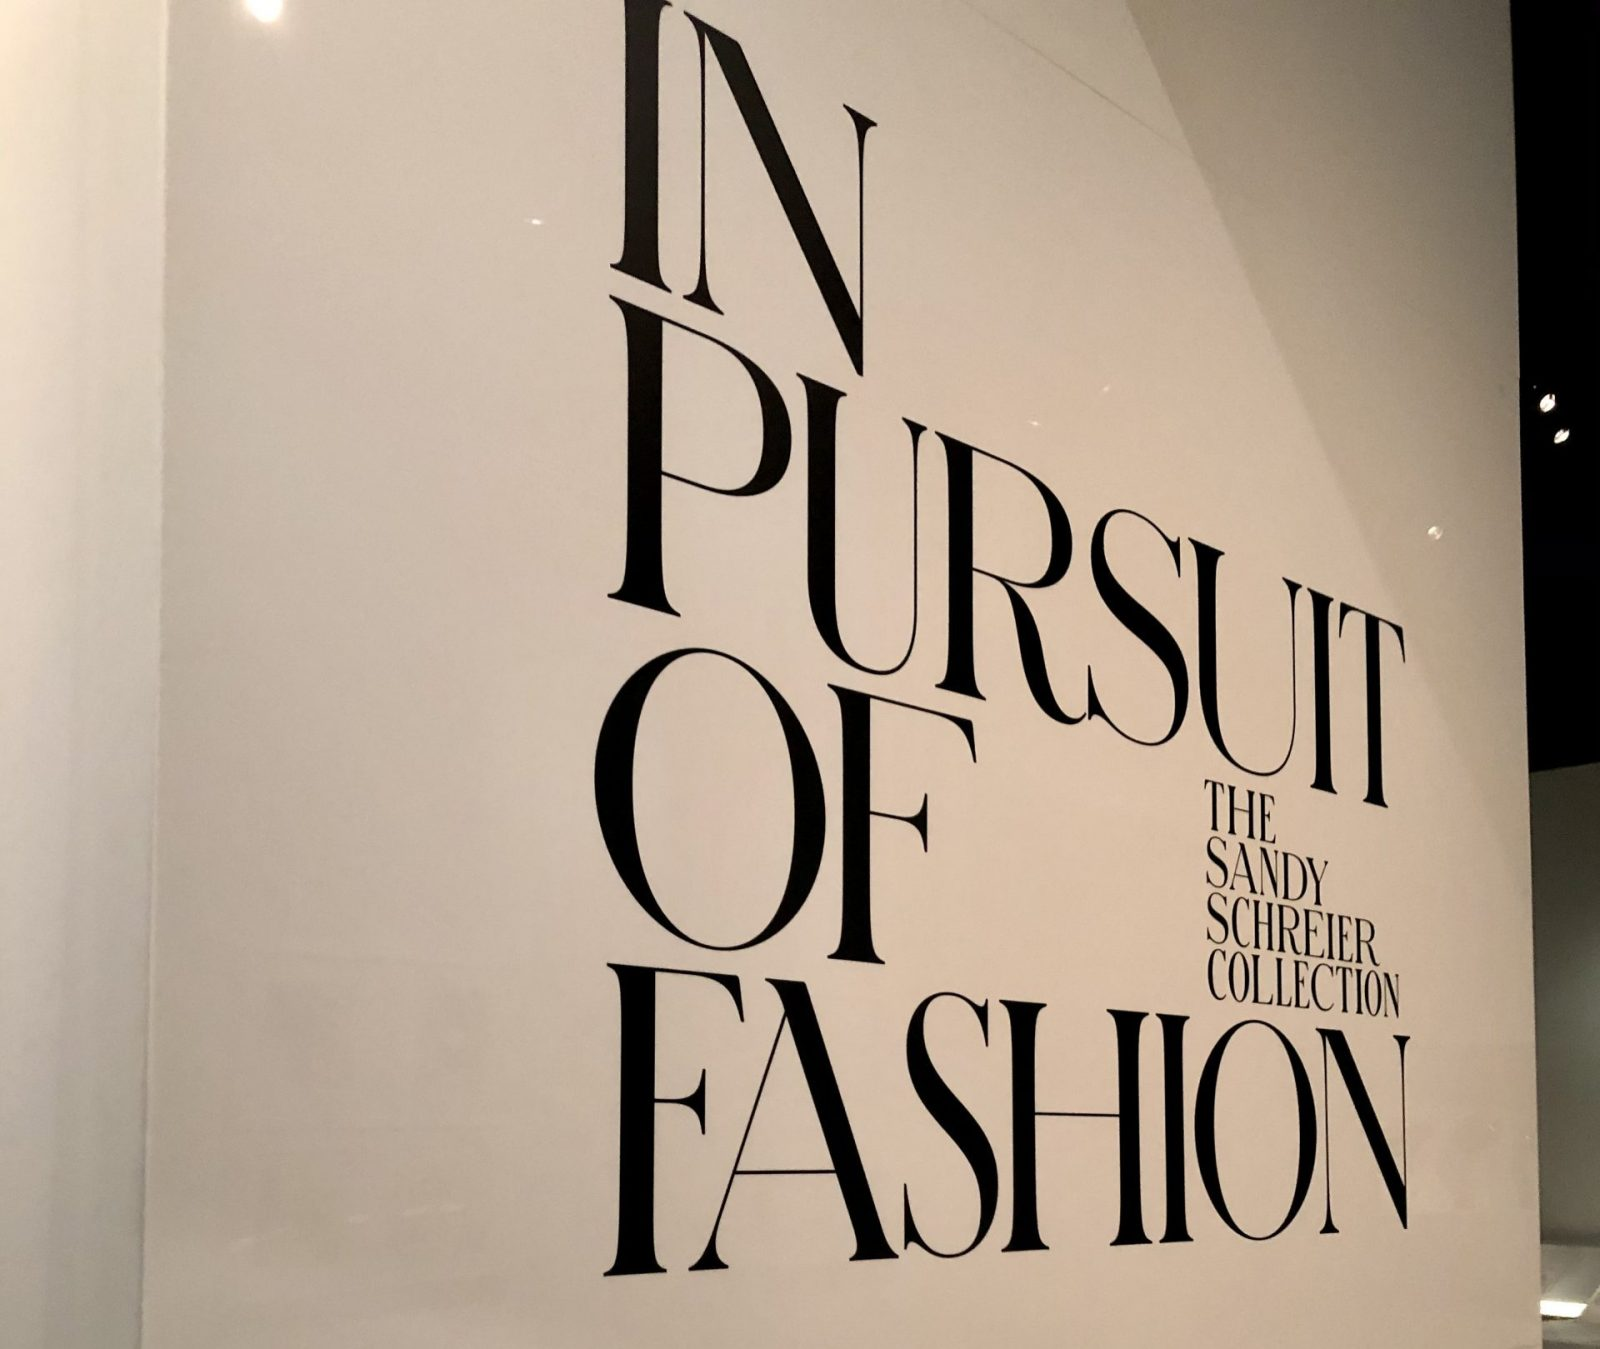 Pursuit of Fashion